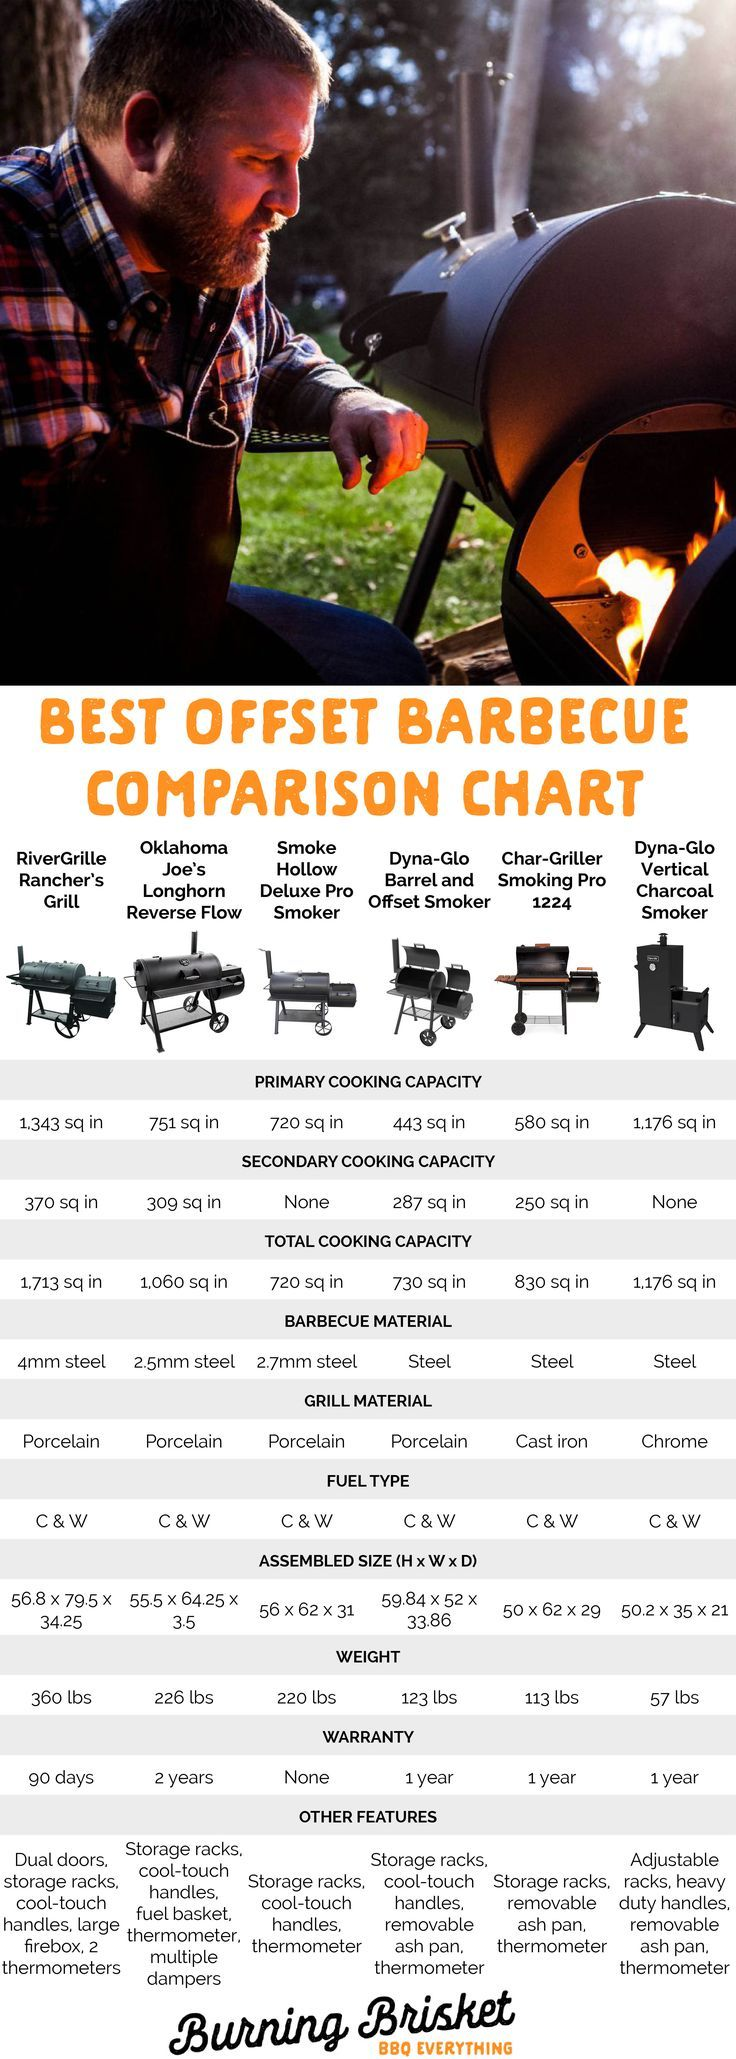 Make buying a new offset smoker easy by checking out all the important features on this comparison chart of the best offset smokers. For more details, click the image to read the full review | Burning Brisket | Barbecue Everything | barrel smokers, how to buy a smoker, smoker comparison, horizontal smoker, vertical smoker